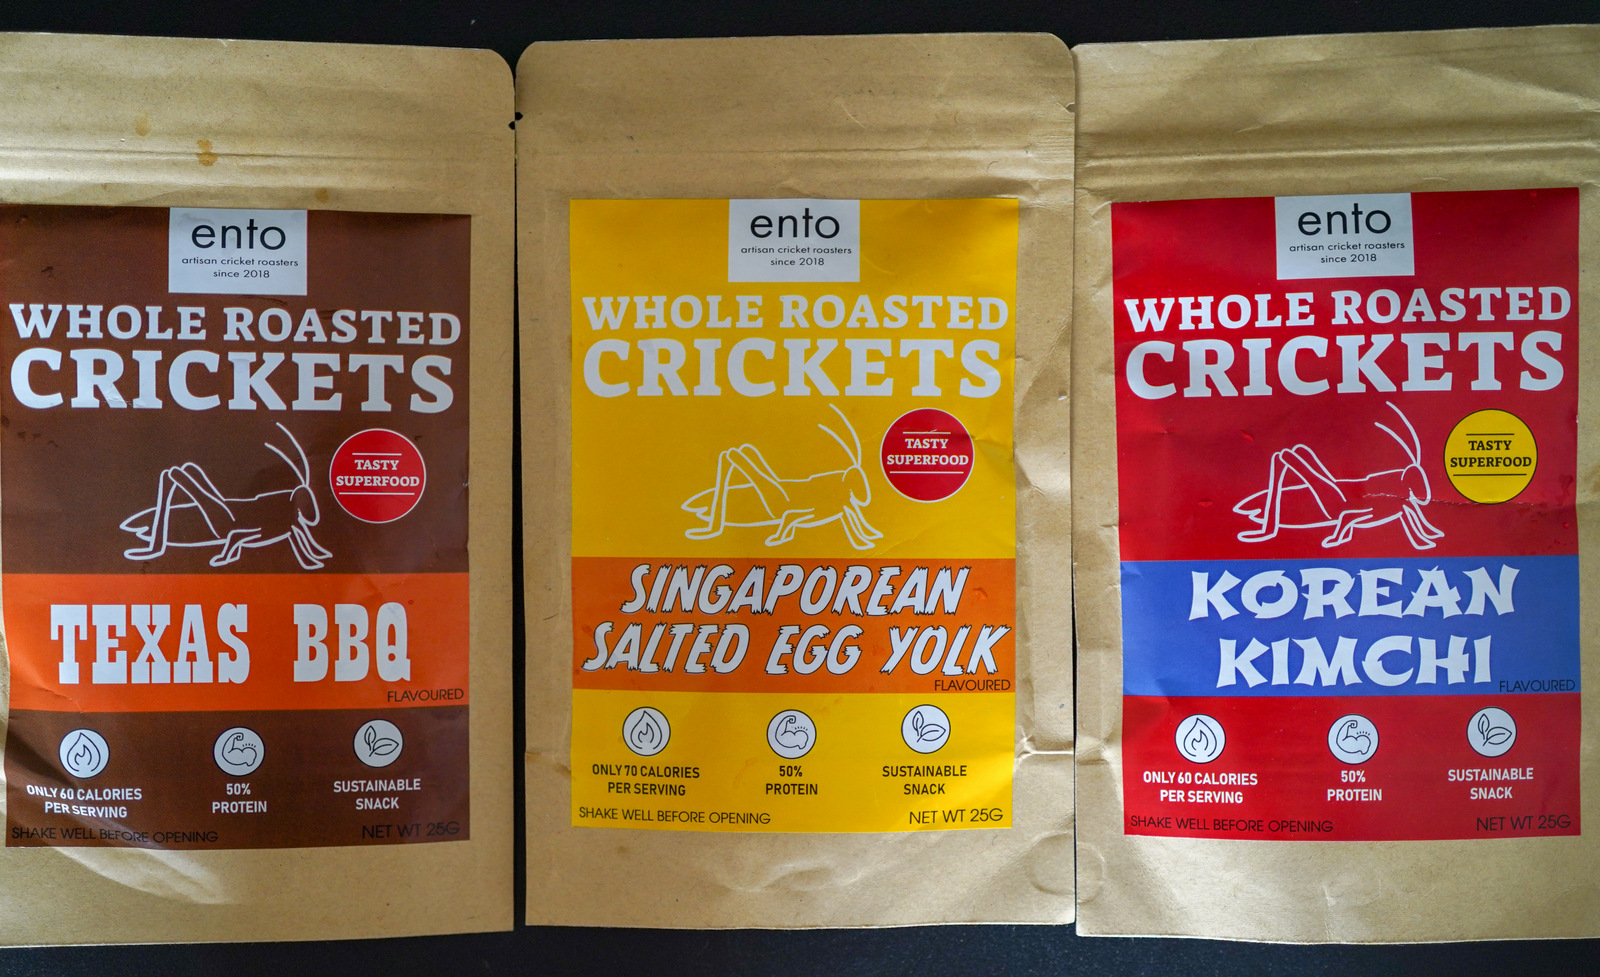 ento whole roasted crickets